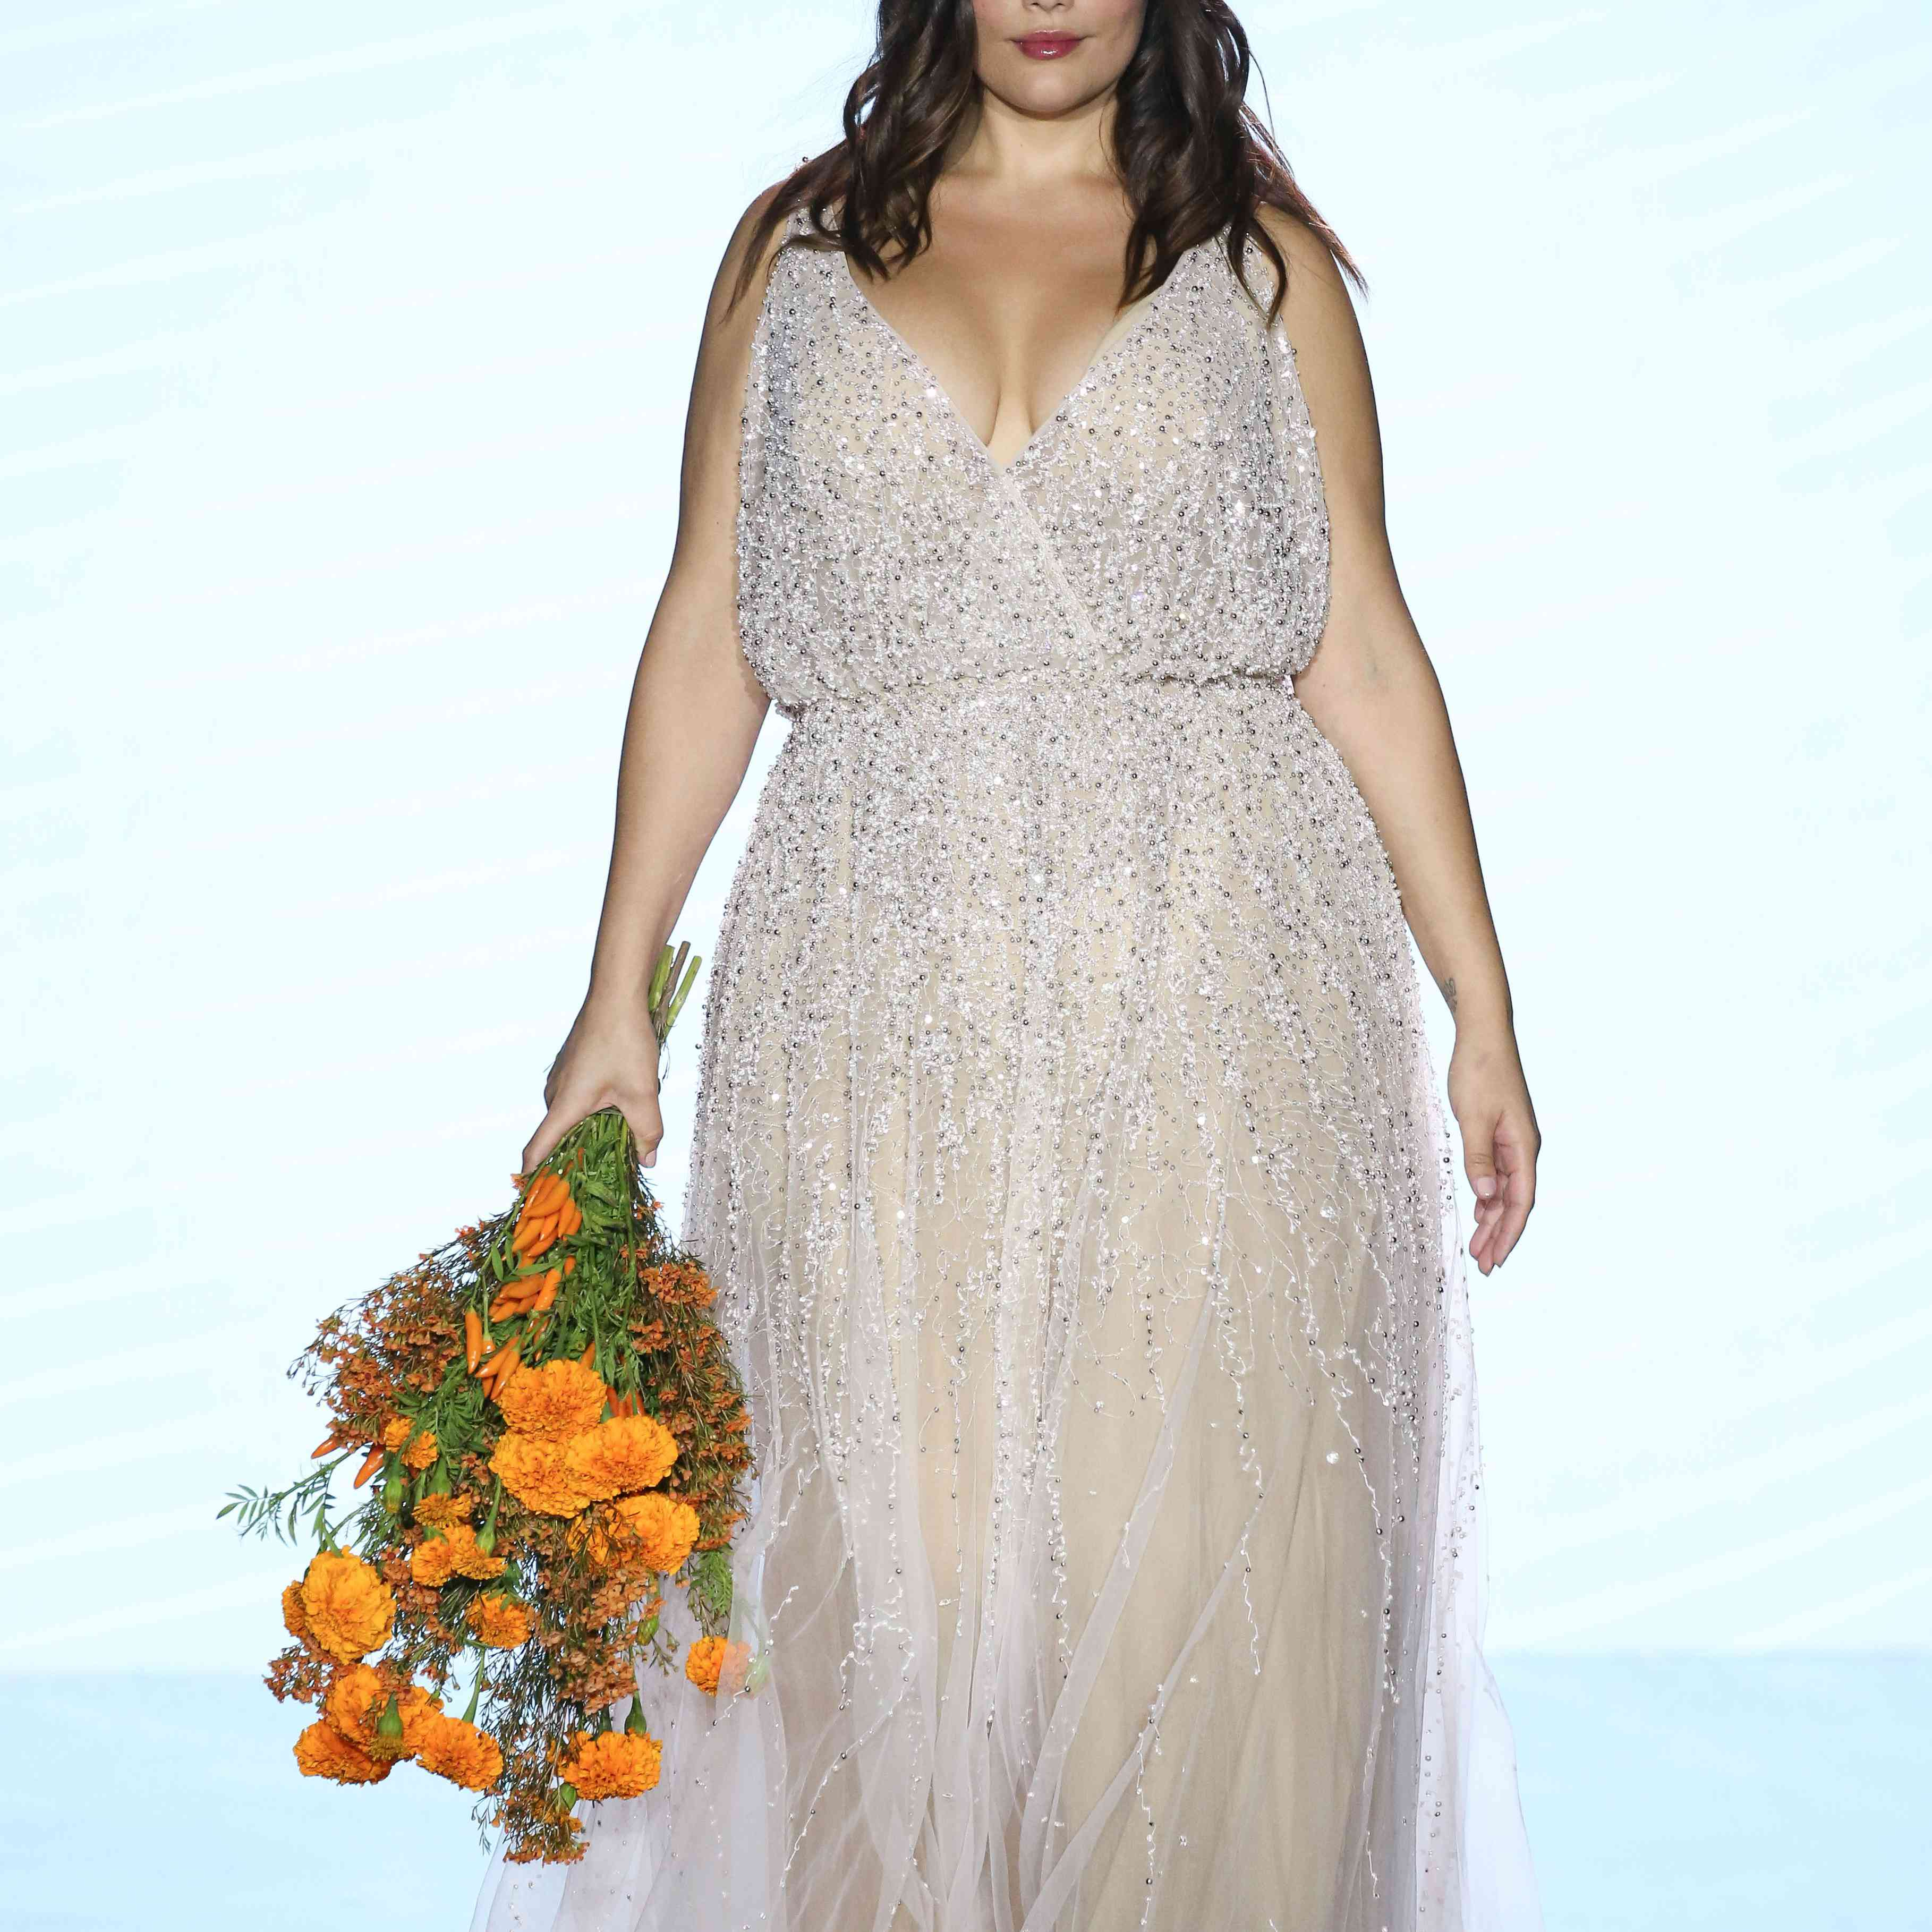 Model in allover sparkle wedding dress with wrapped V-neck bodice